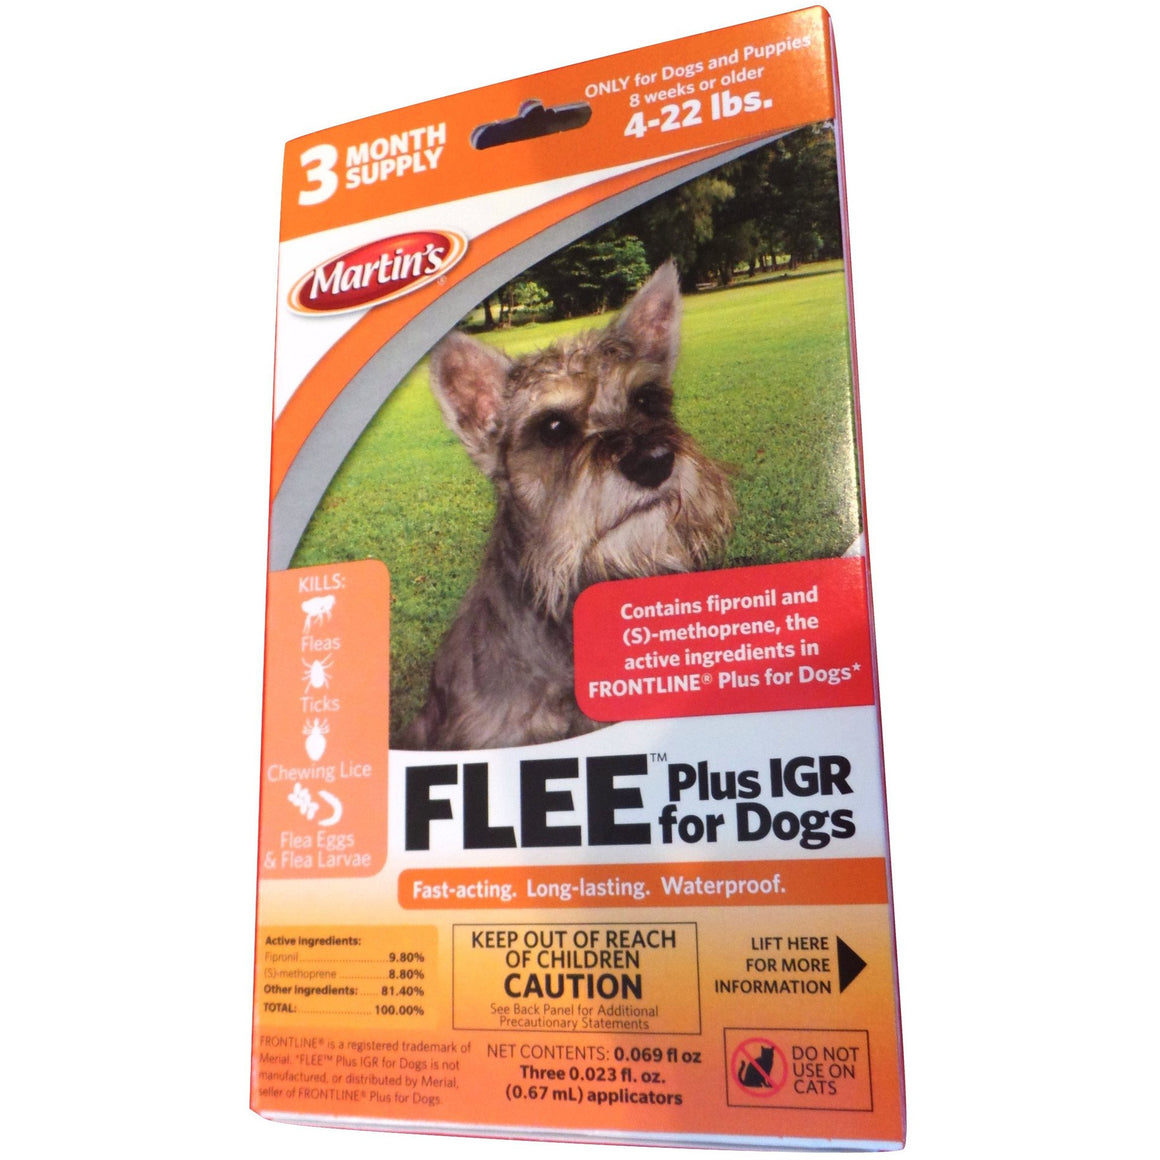 Flee Plus IGR for Dogs 4 - 22 Lbs.